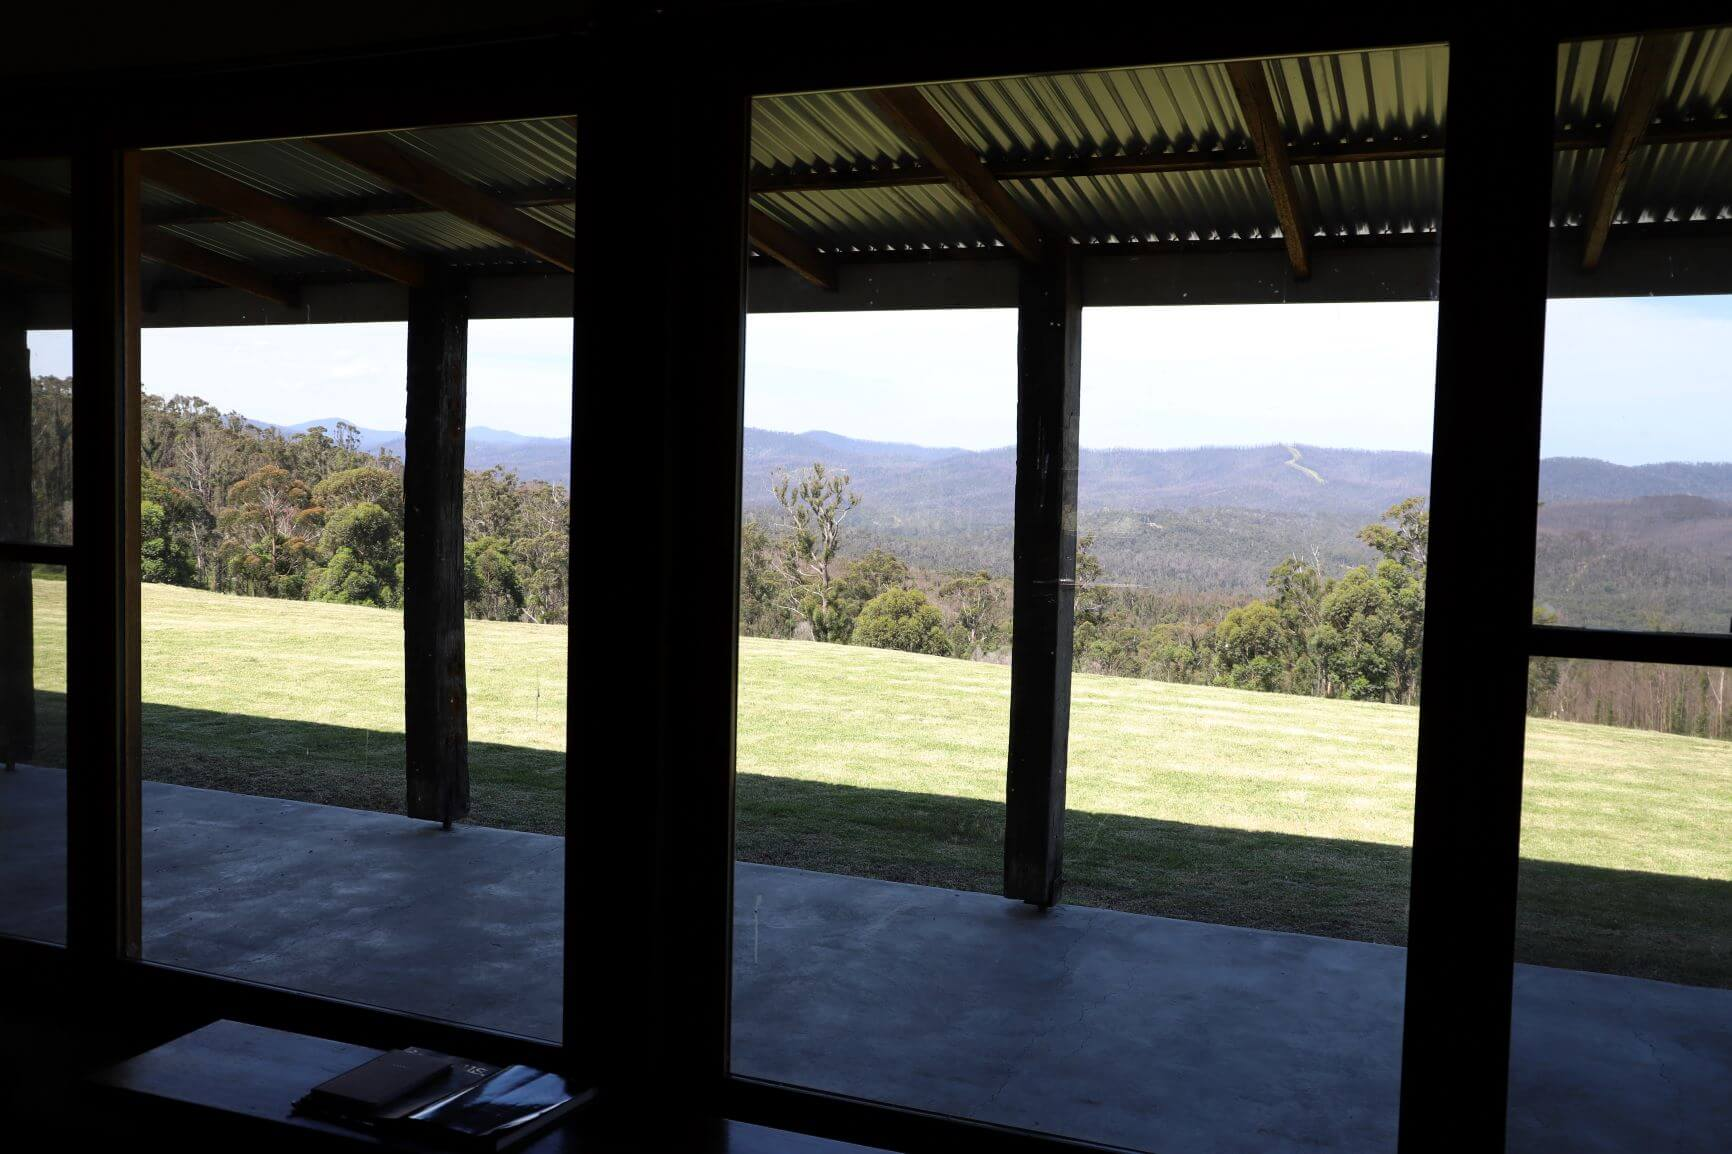 Looking out of the house into the valley